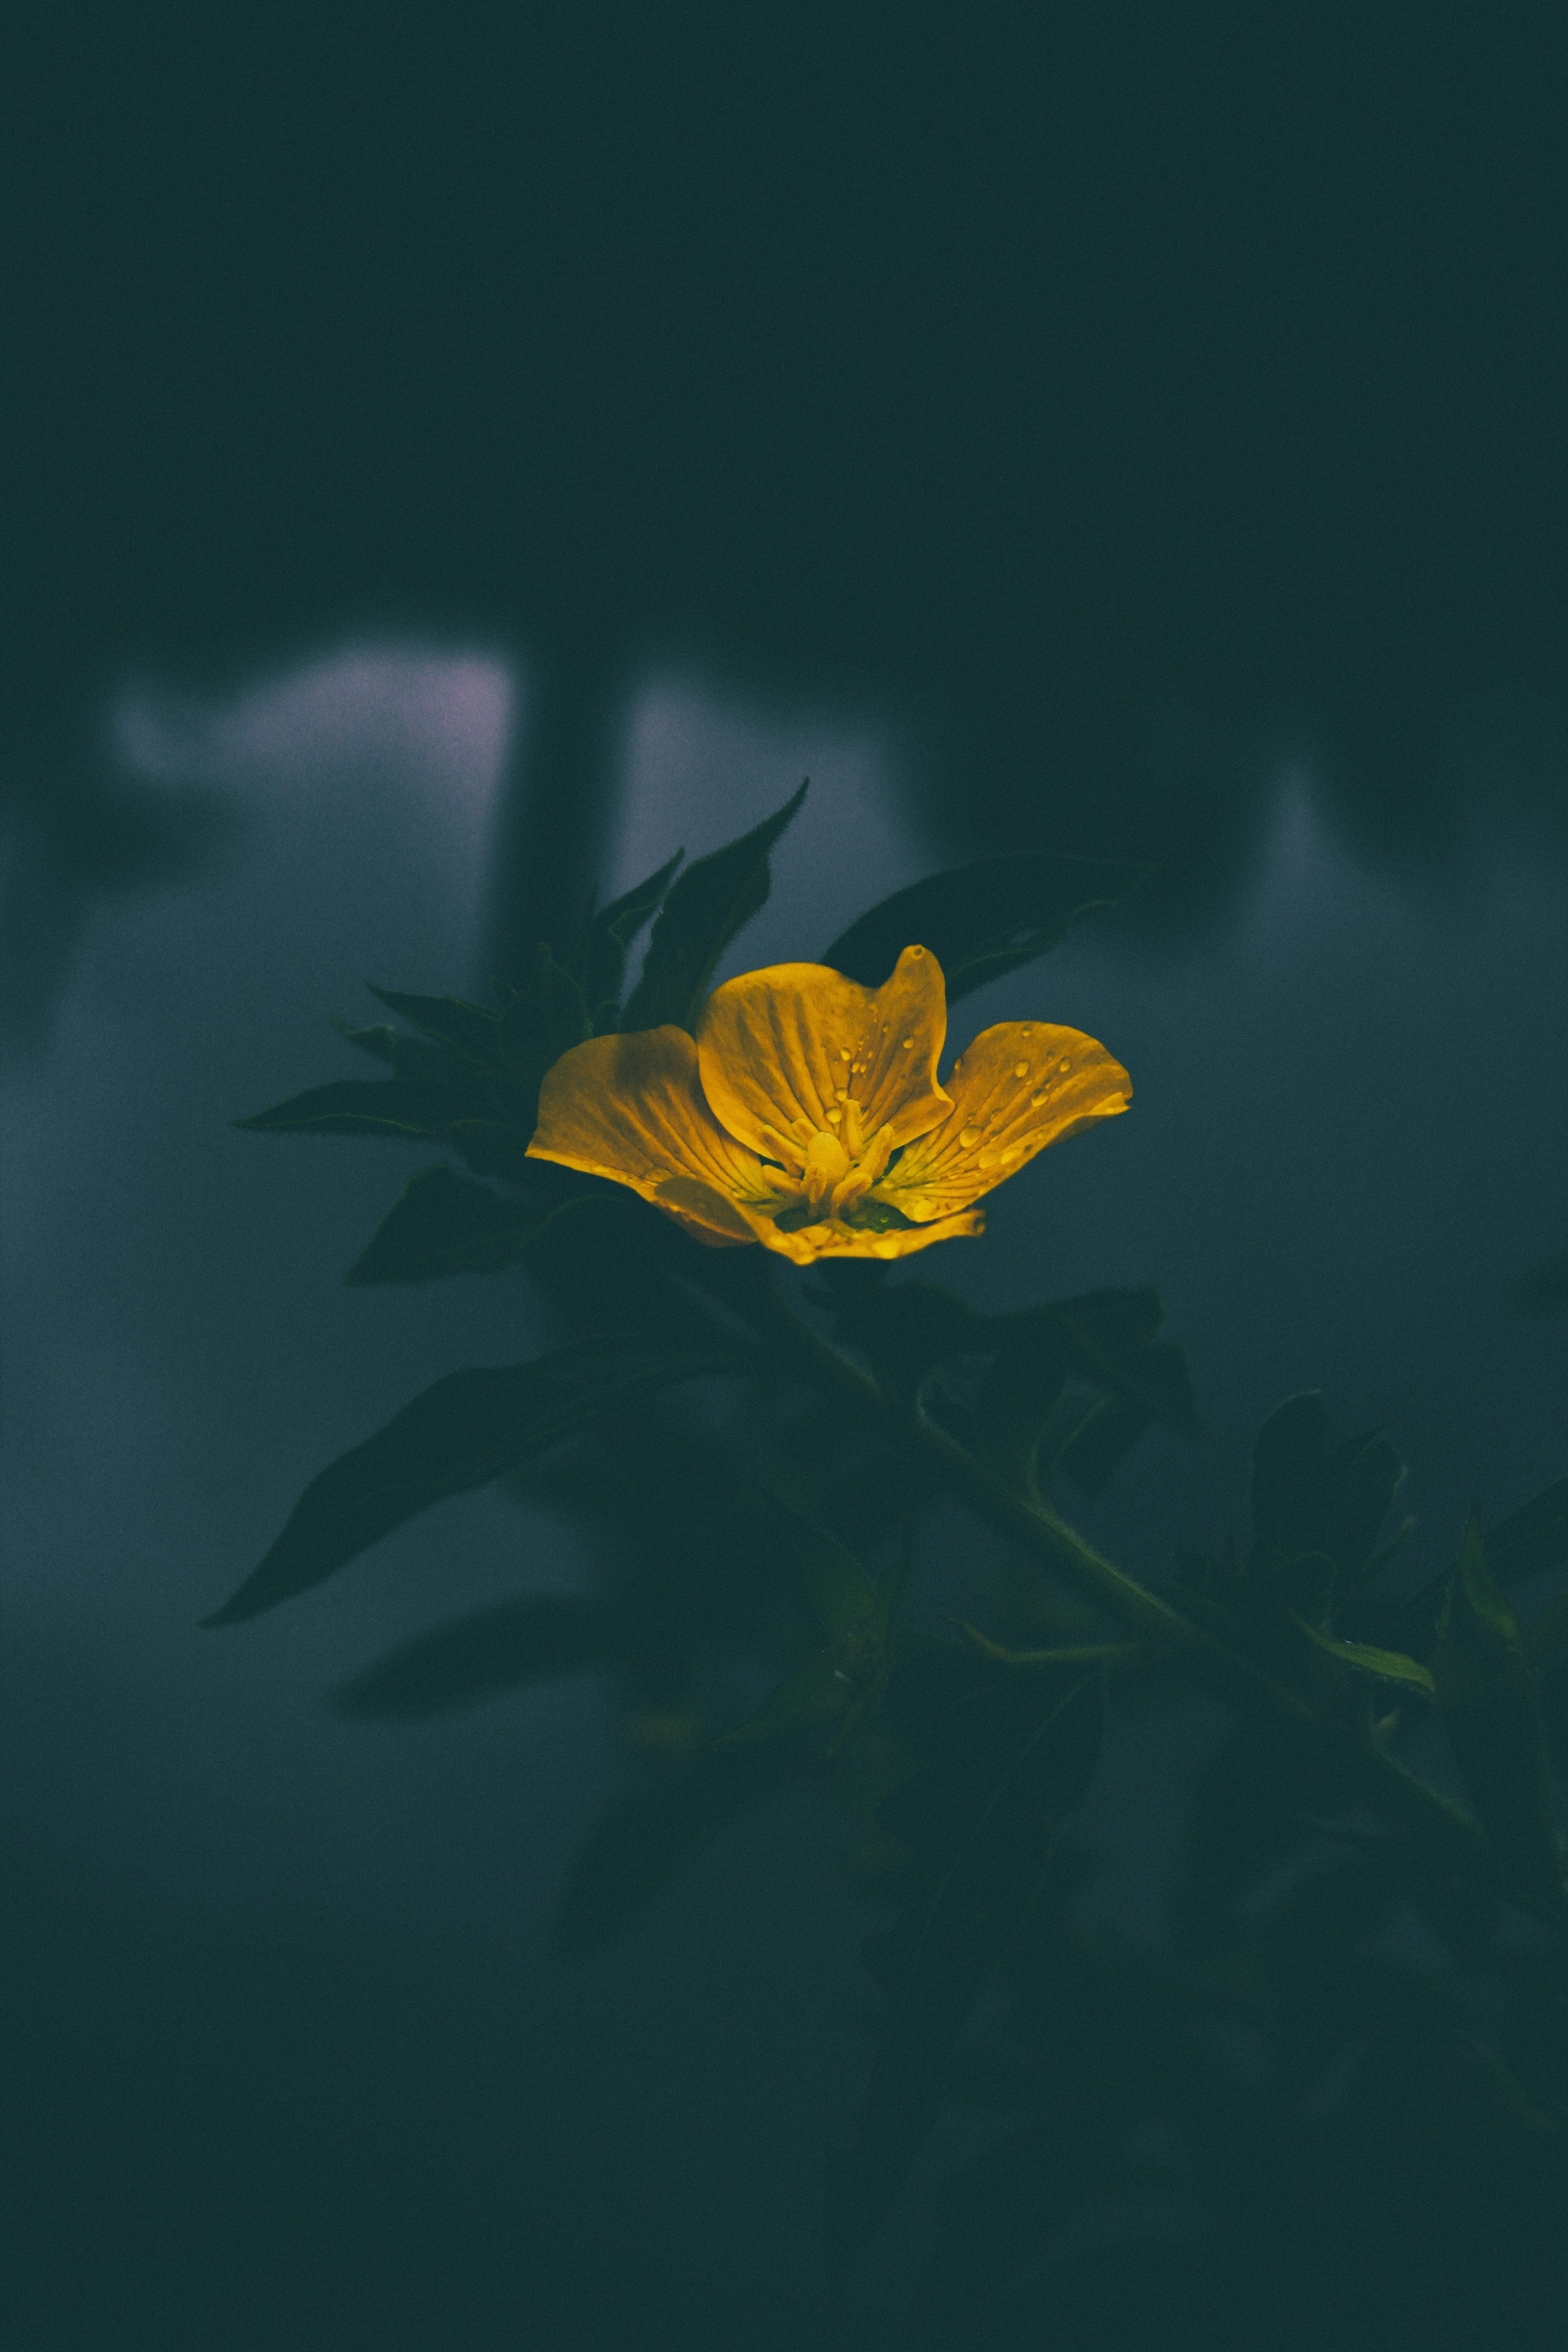 Yellow Flower Iphone Wallpaper Idrop News